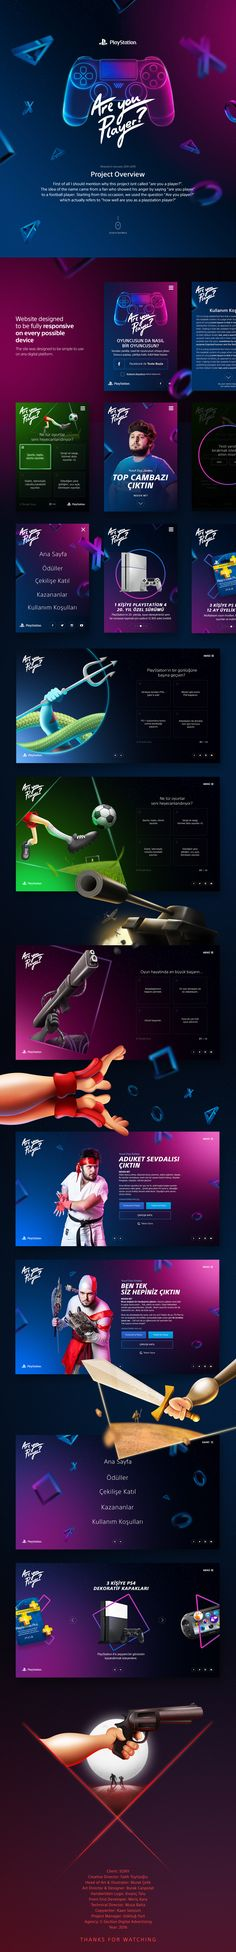 Sony Playstation - Are You Player? on Behance